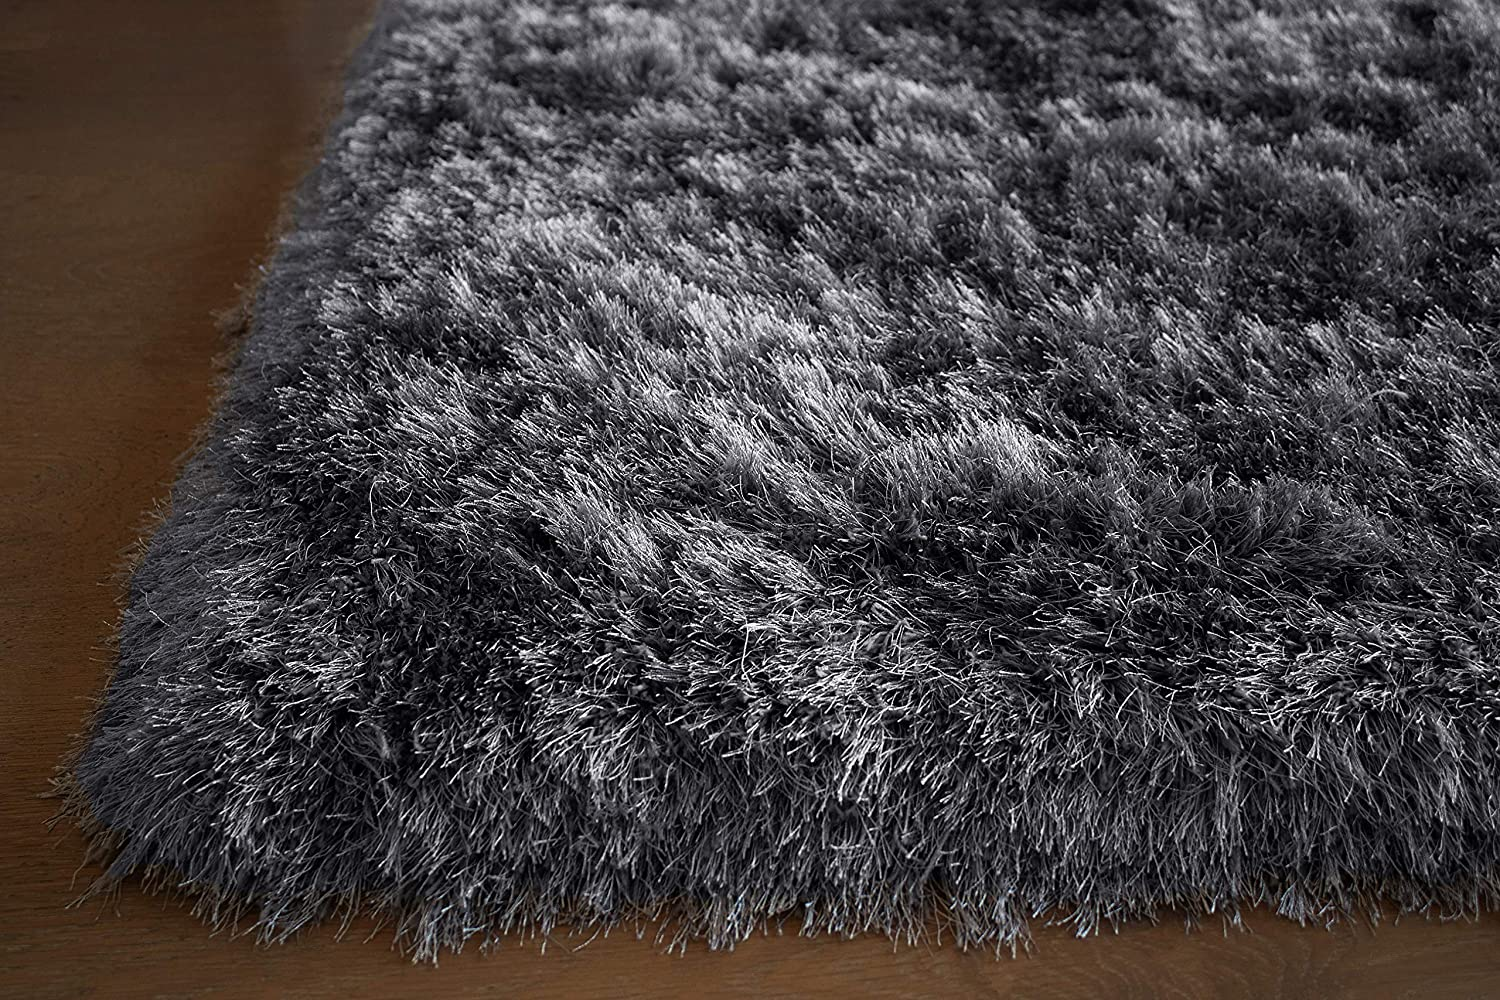 Gray Grey Color Two Tone 8x10 Area Rug Carpet Rug Solid Soft Plush Pile Shag Shaggy Fuzzy Furry Modern Contemporary Decorative Designer Bedroom Living Room Hand Woven Non-Slip Canvas Backing